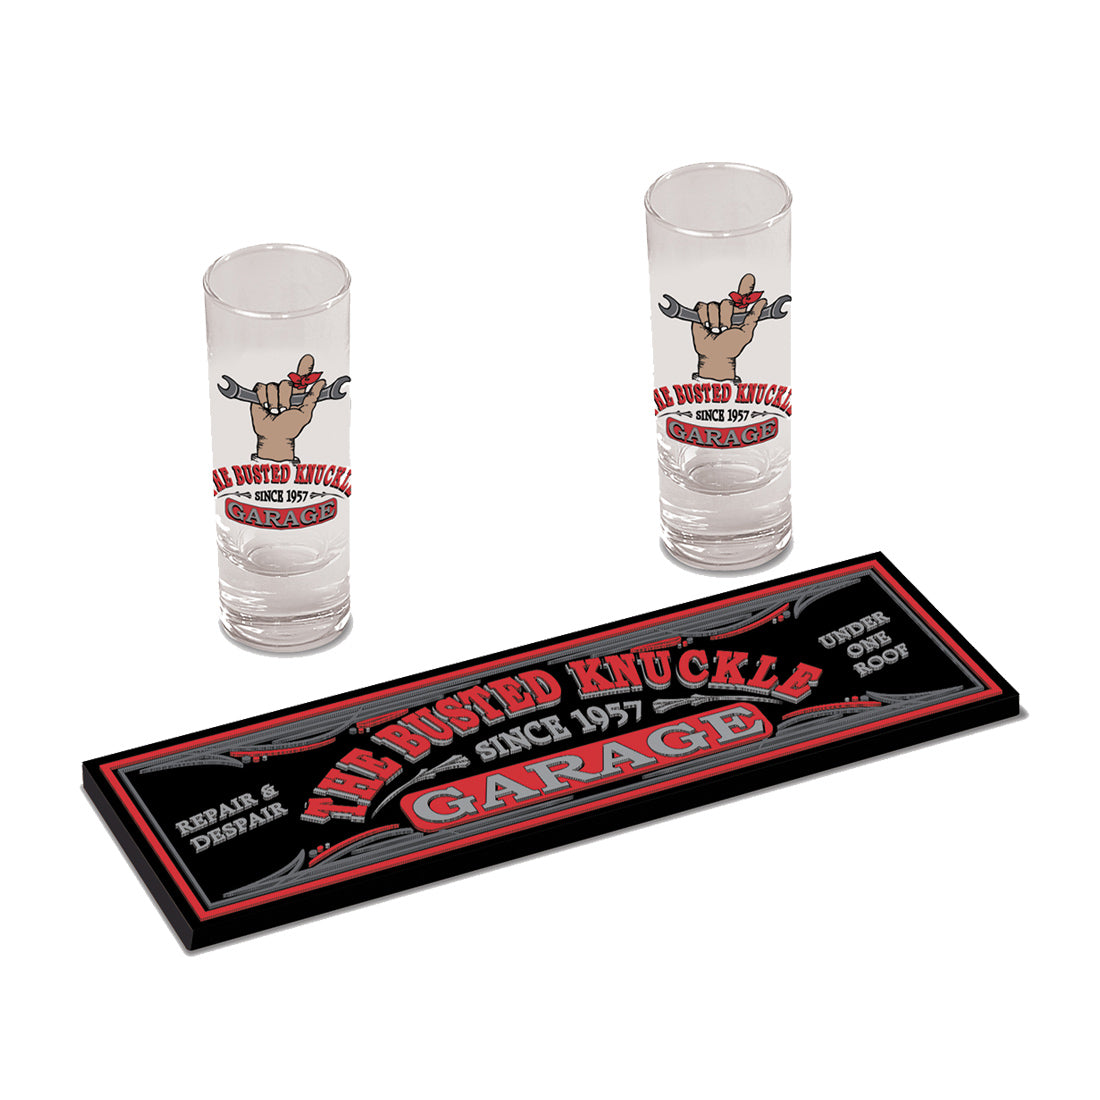 Car Guy Shot Glass Gift Set with Rubber Mat